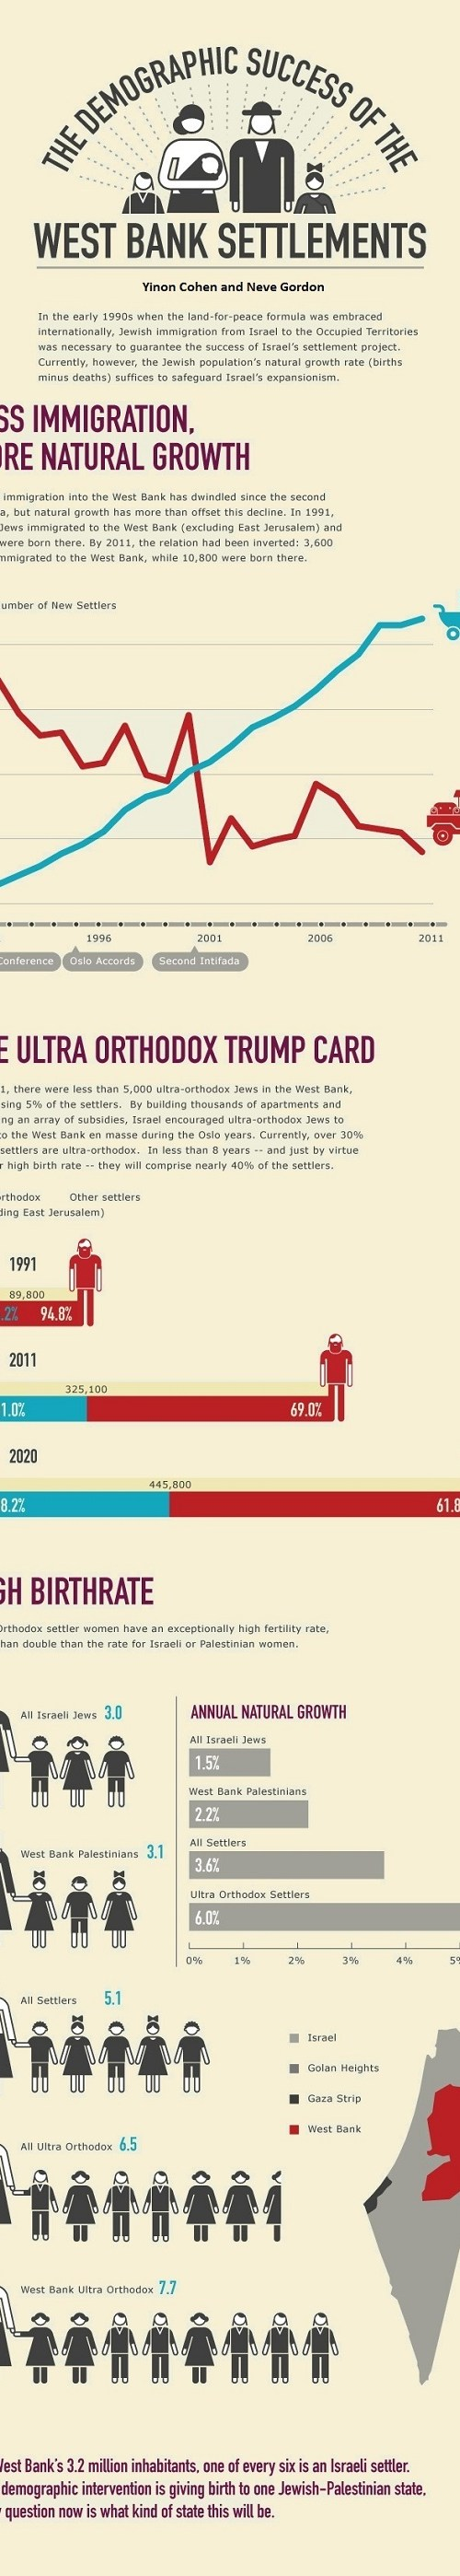 Demographic success of West Bank's Jewish settlements